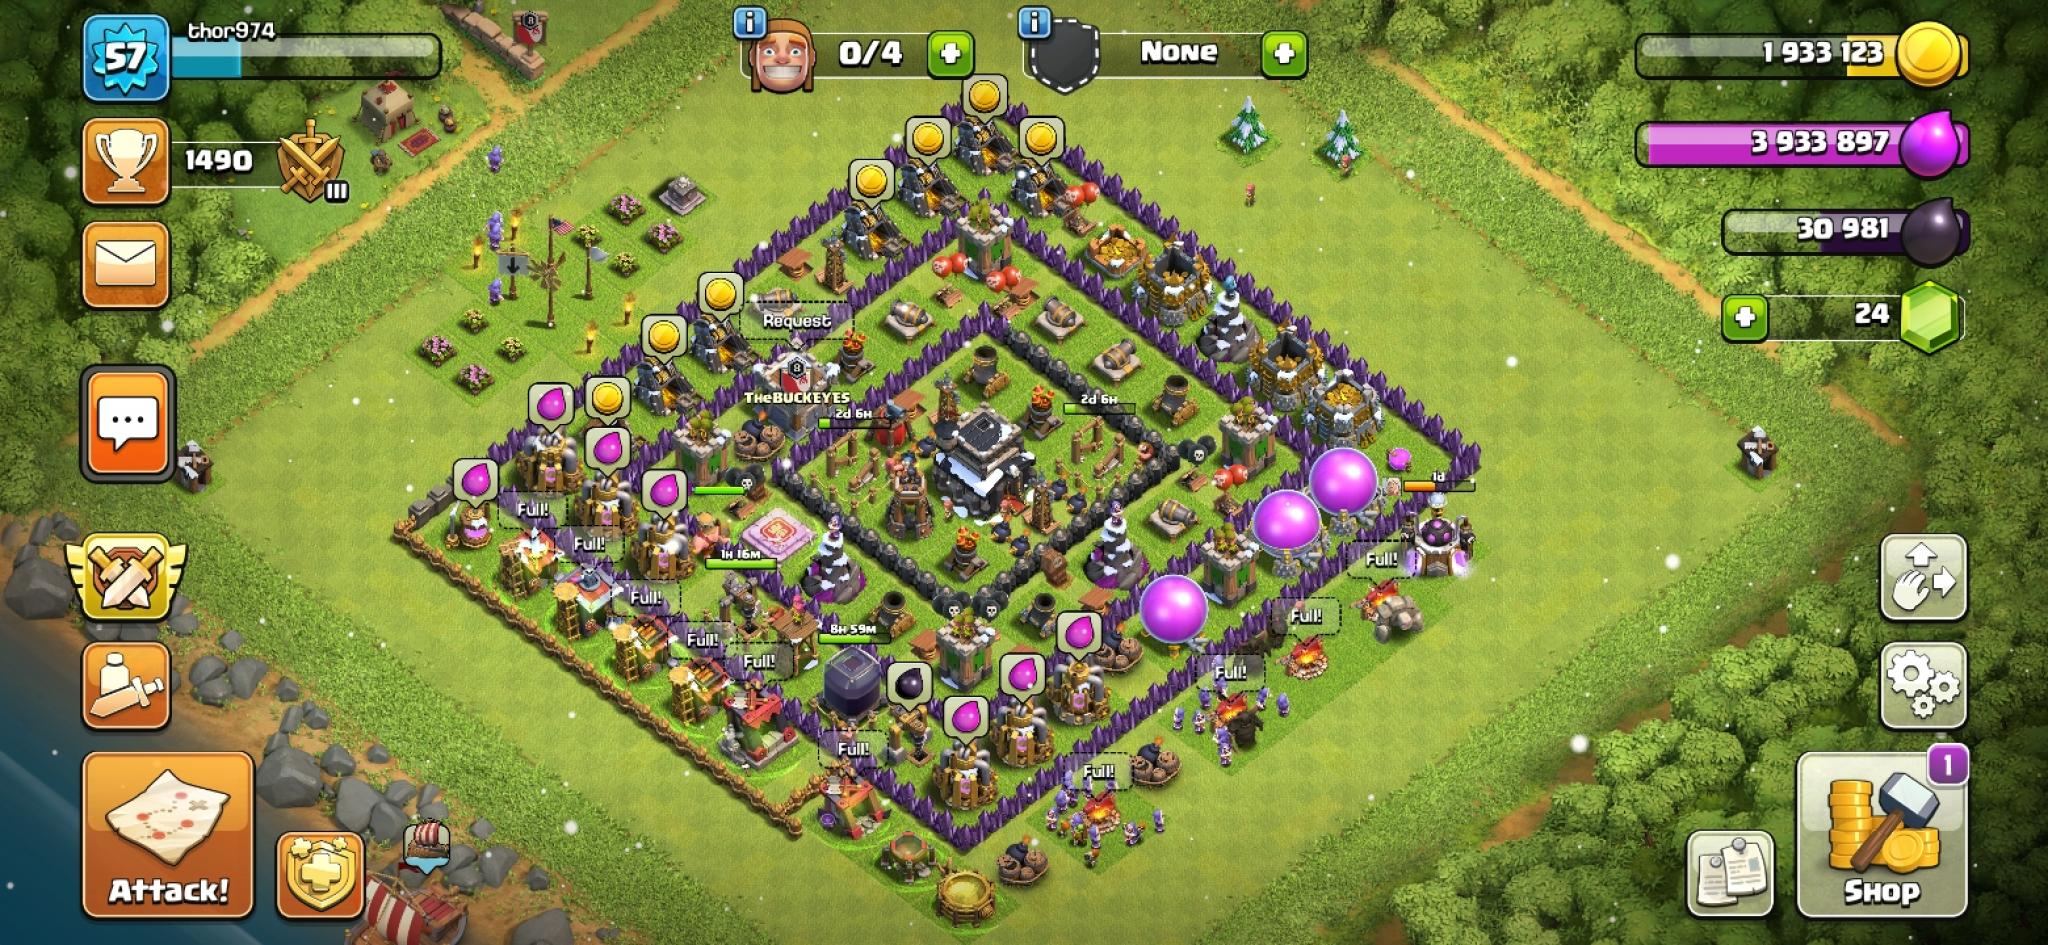 Clash of Clans farm base for Town Hall 9